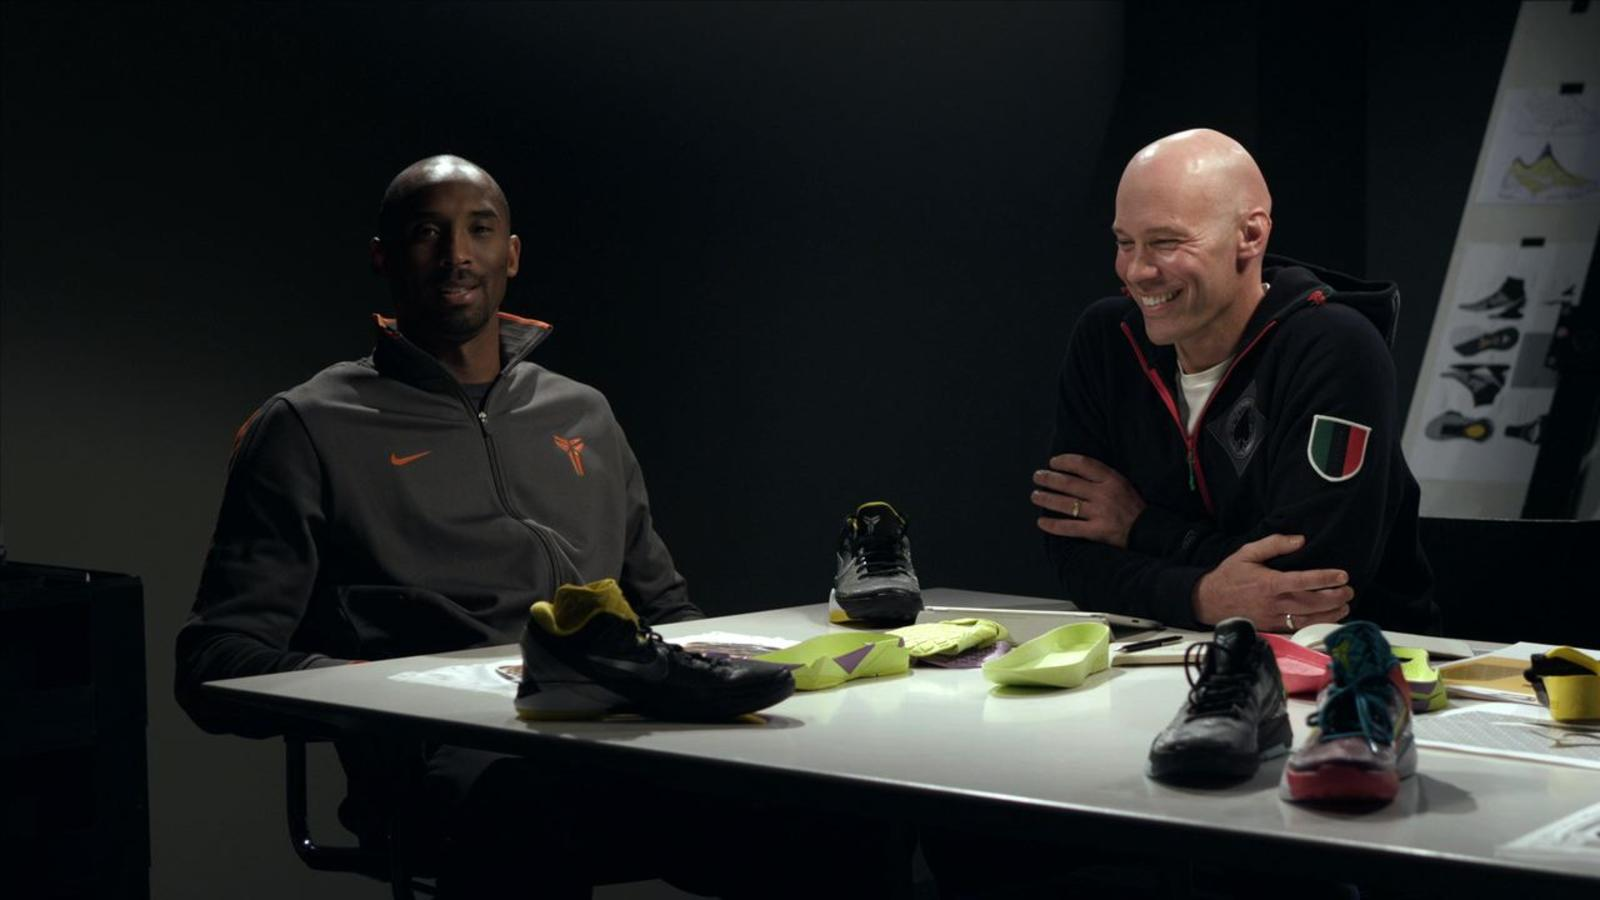 Building a system: Kobe Bryant and Eric